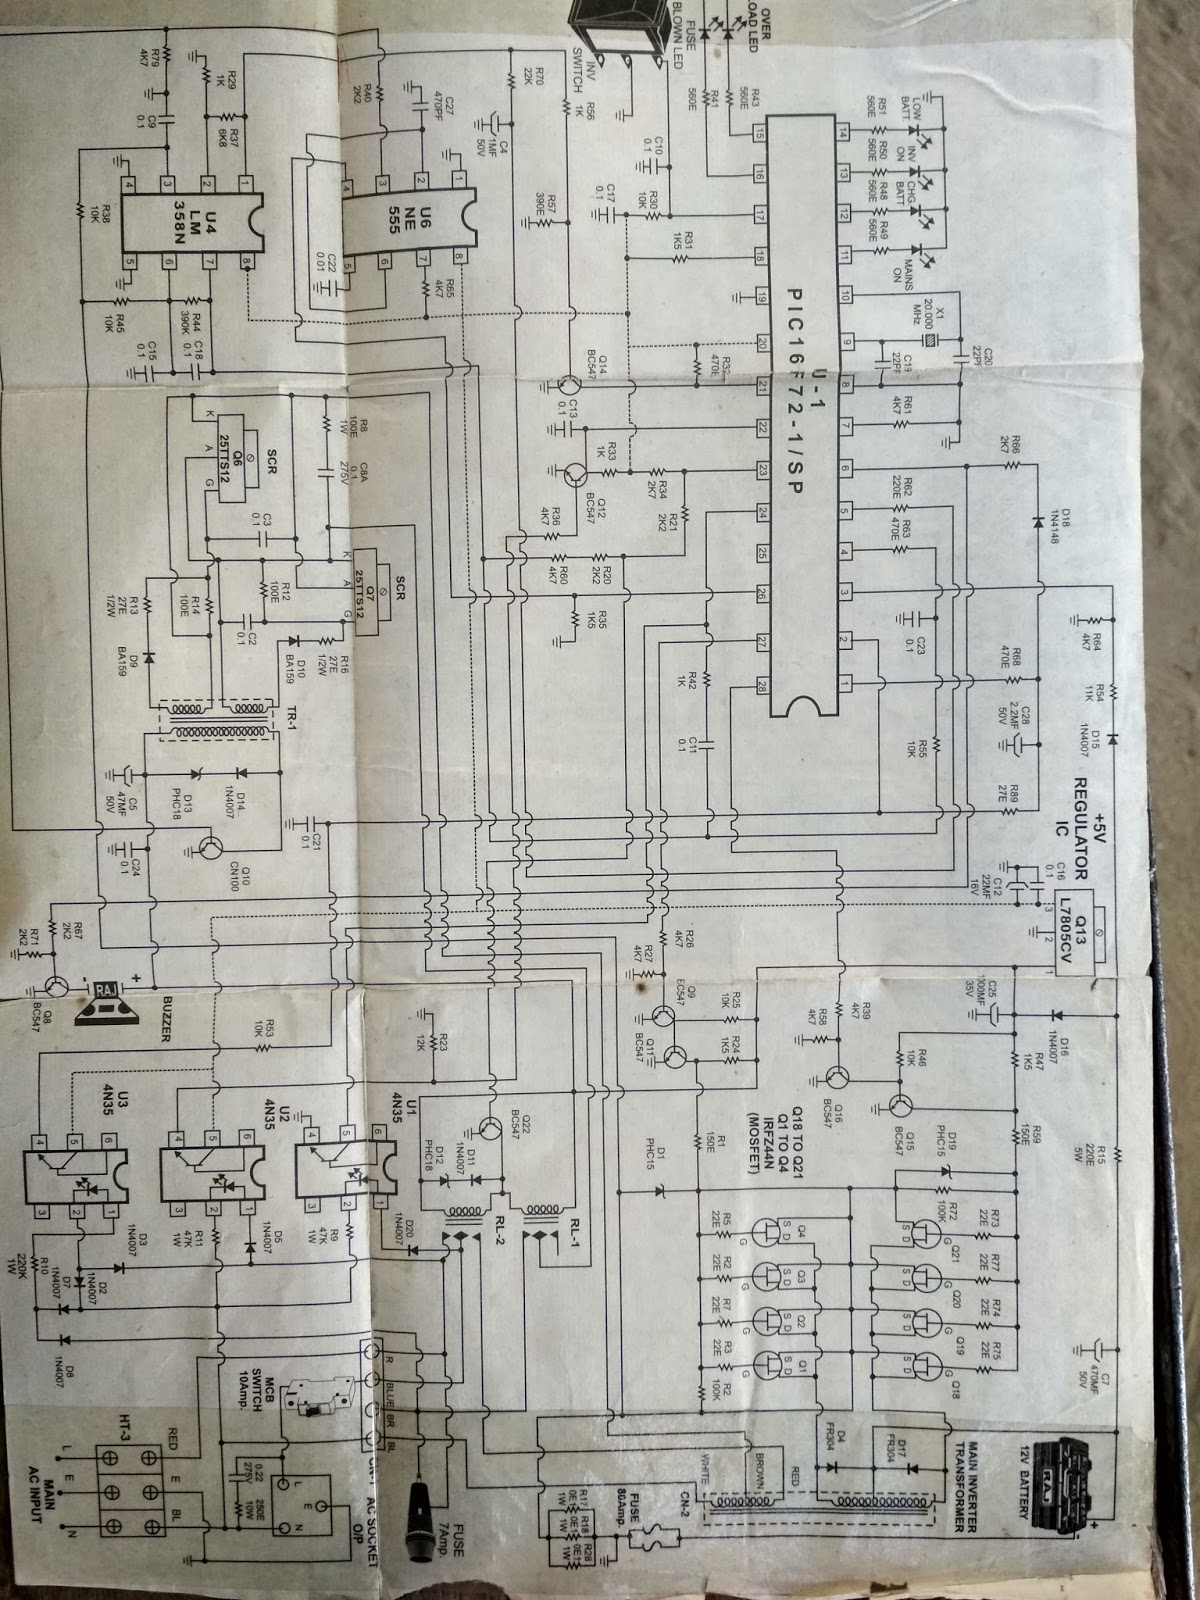 Wiring Diagram For Digital Ammeter Get Free Image About Wiring